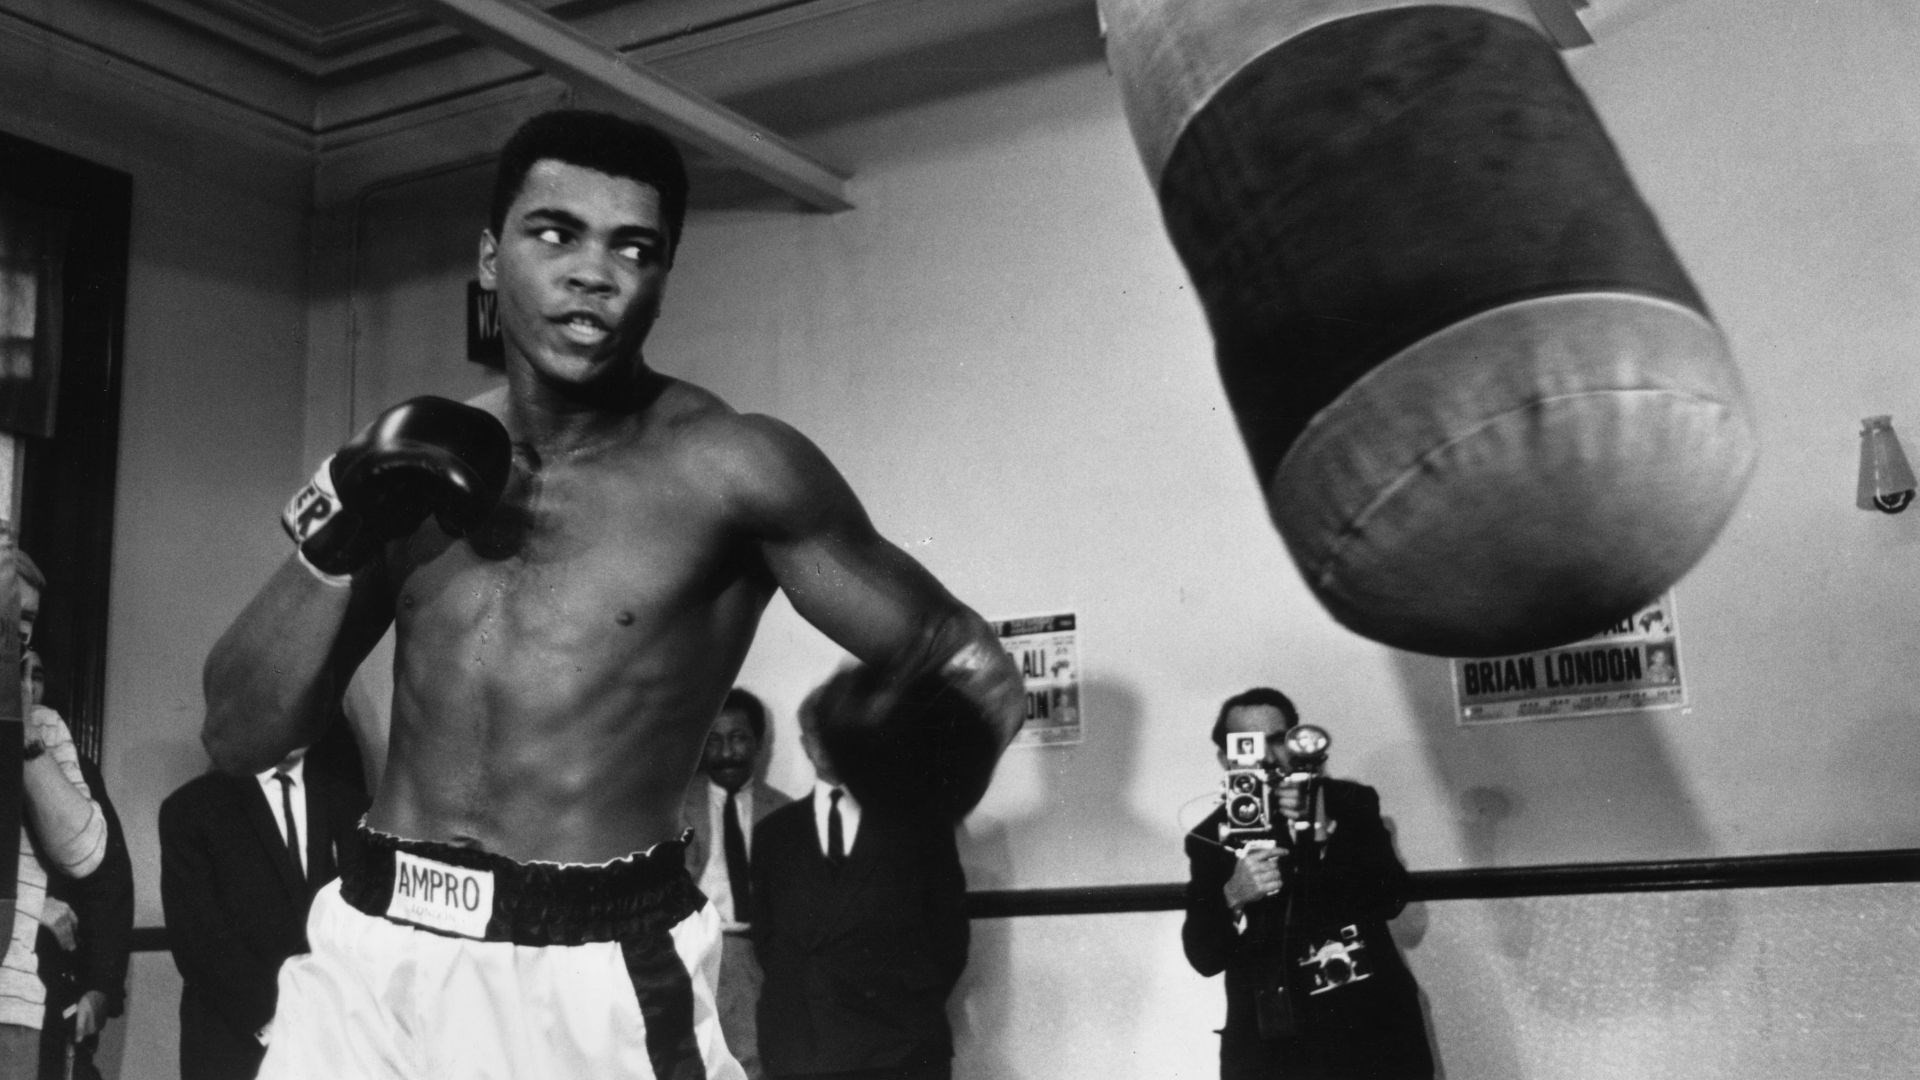 1920x1080 free screensaver wallpapers for muhammad ali (Clive Walter )